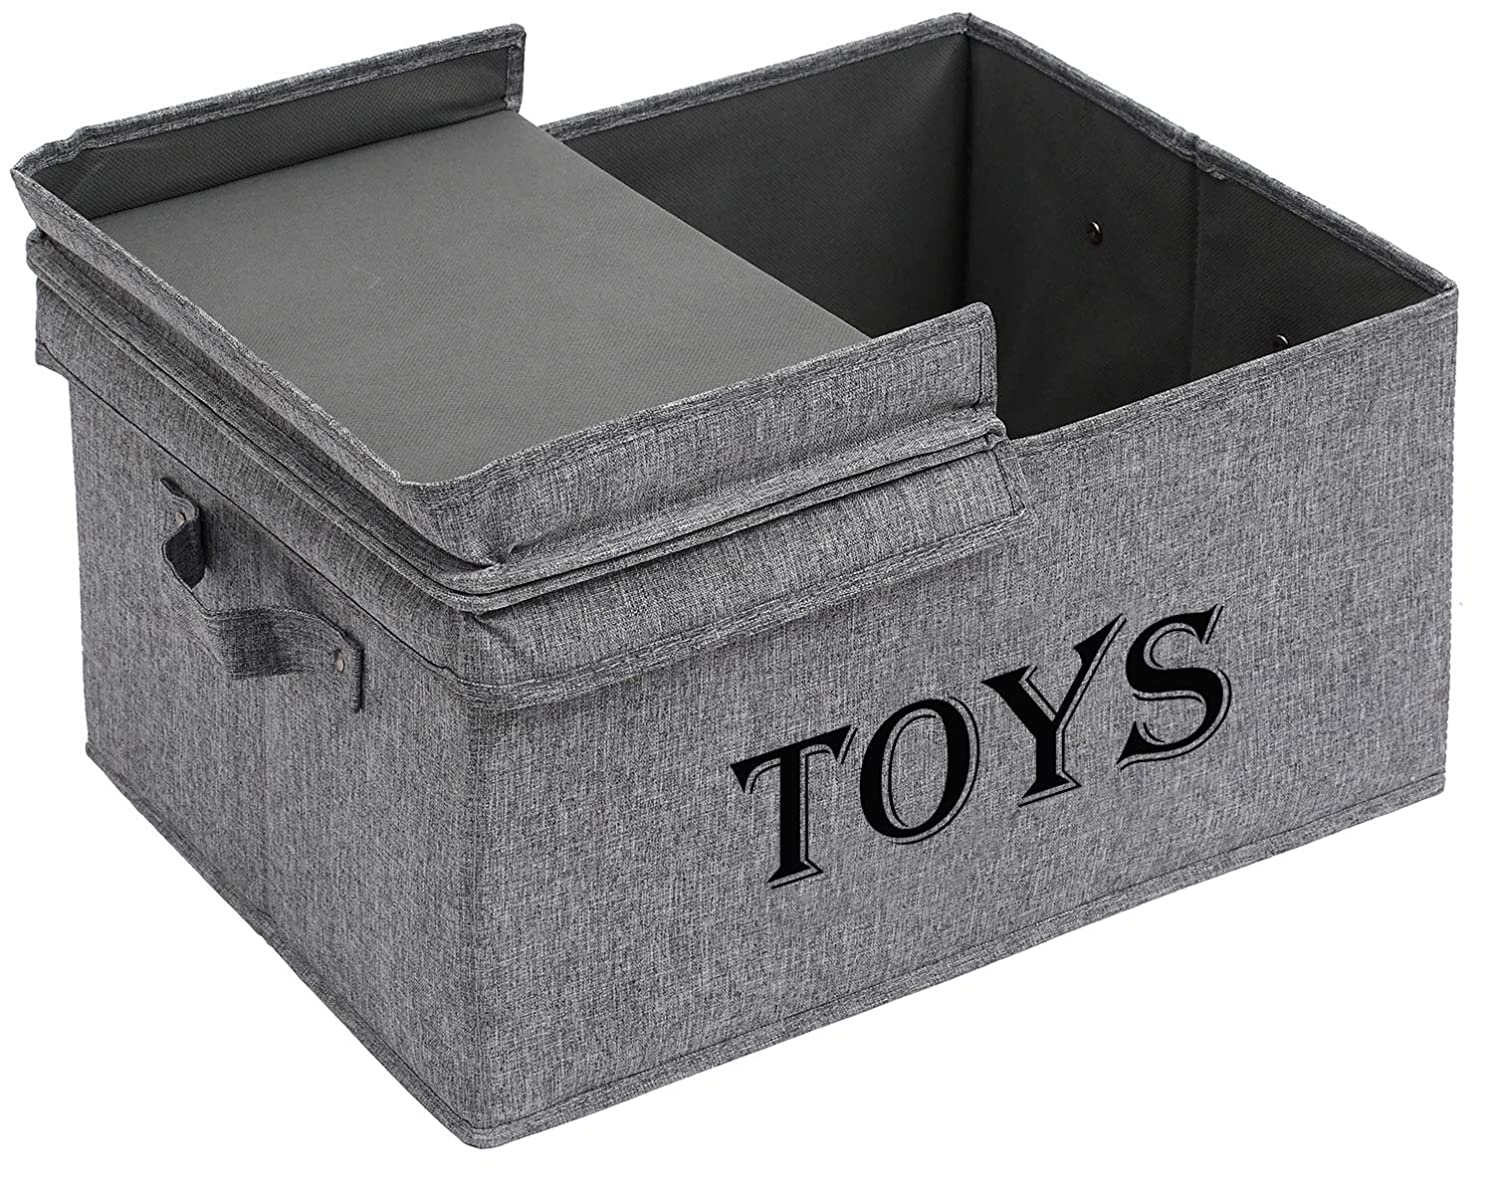 Xbopetda Toy Storage Organizer Chest for Kids & Living Room, Nursery, Playroom, Closet etc. –Large Collapsible Toys Bin with lid for Children & Dog Toys, Great Box for Boys and Girls-Snow Gray